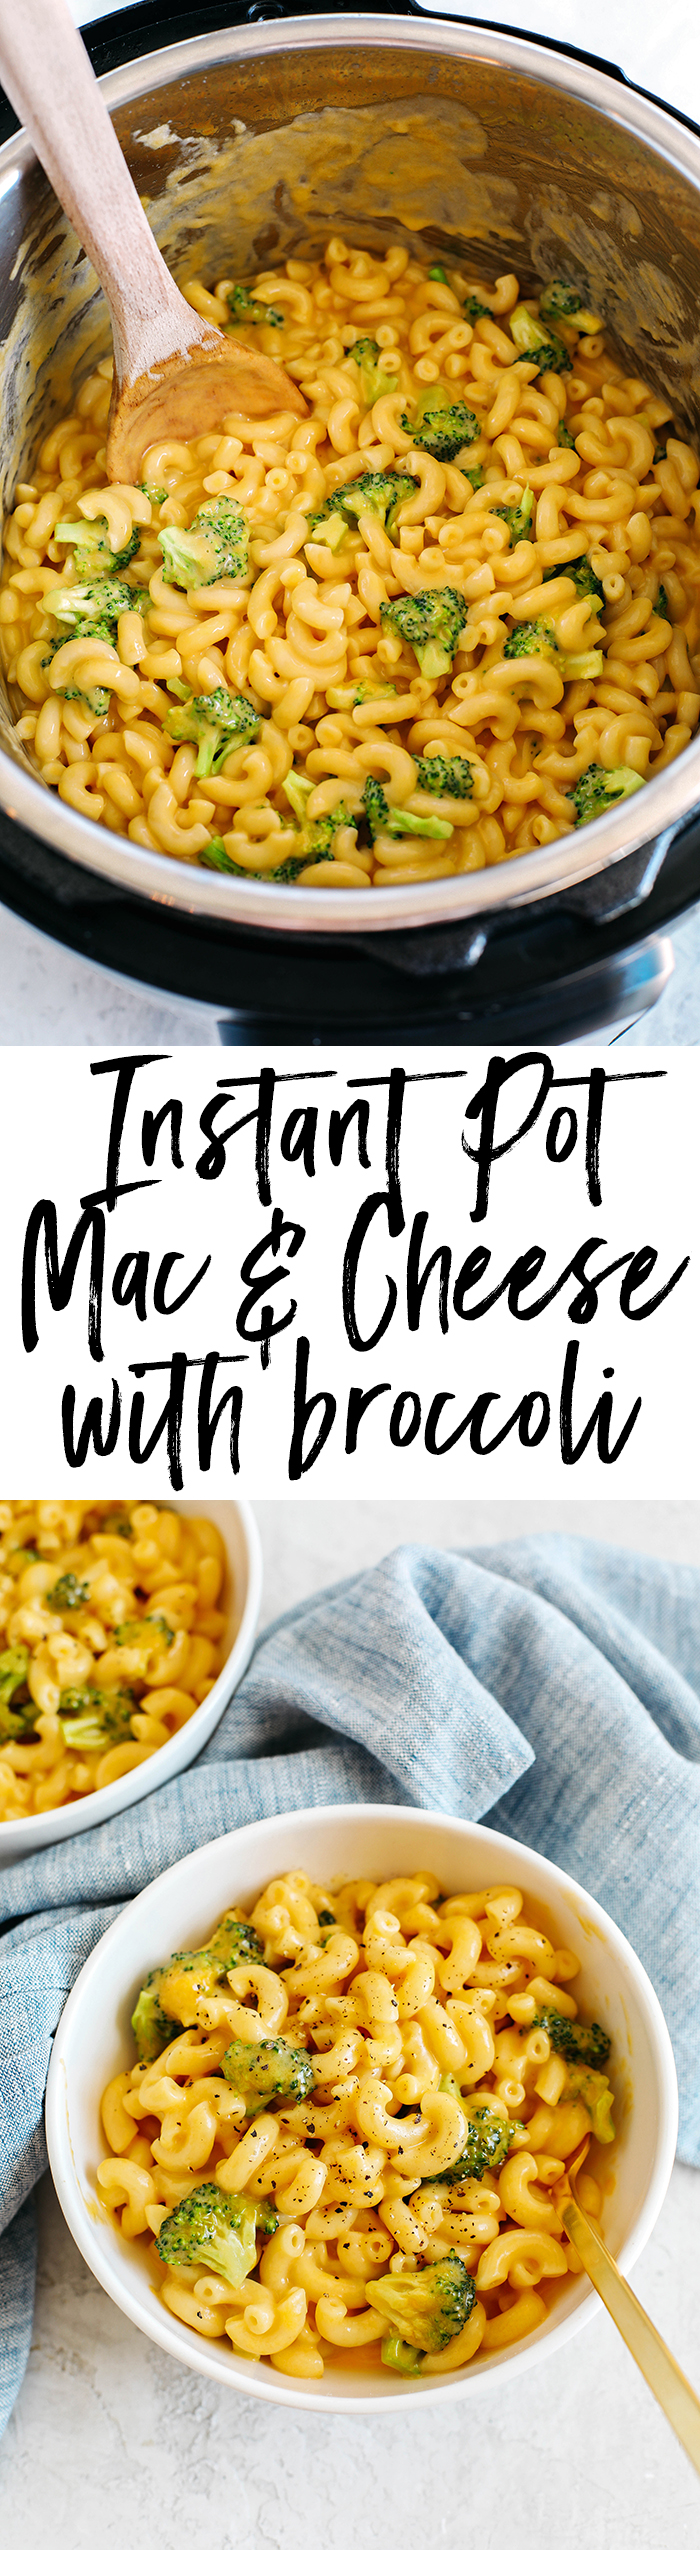 Creamy and delicious Instant Pot Mac & Cheese with Broccoli easily made in under 10 minutes for the perfect comfort food meal your whole family will love!